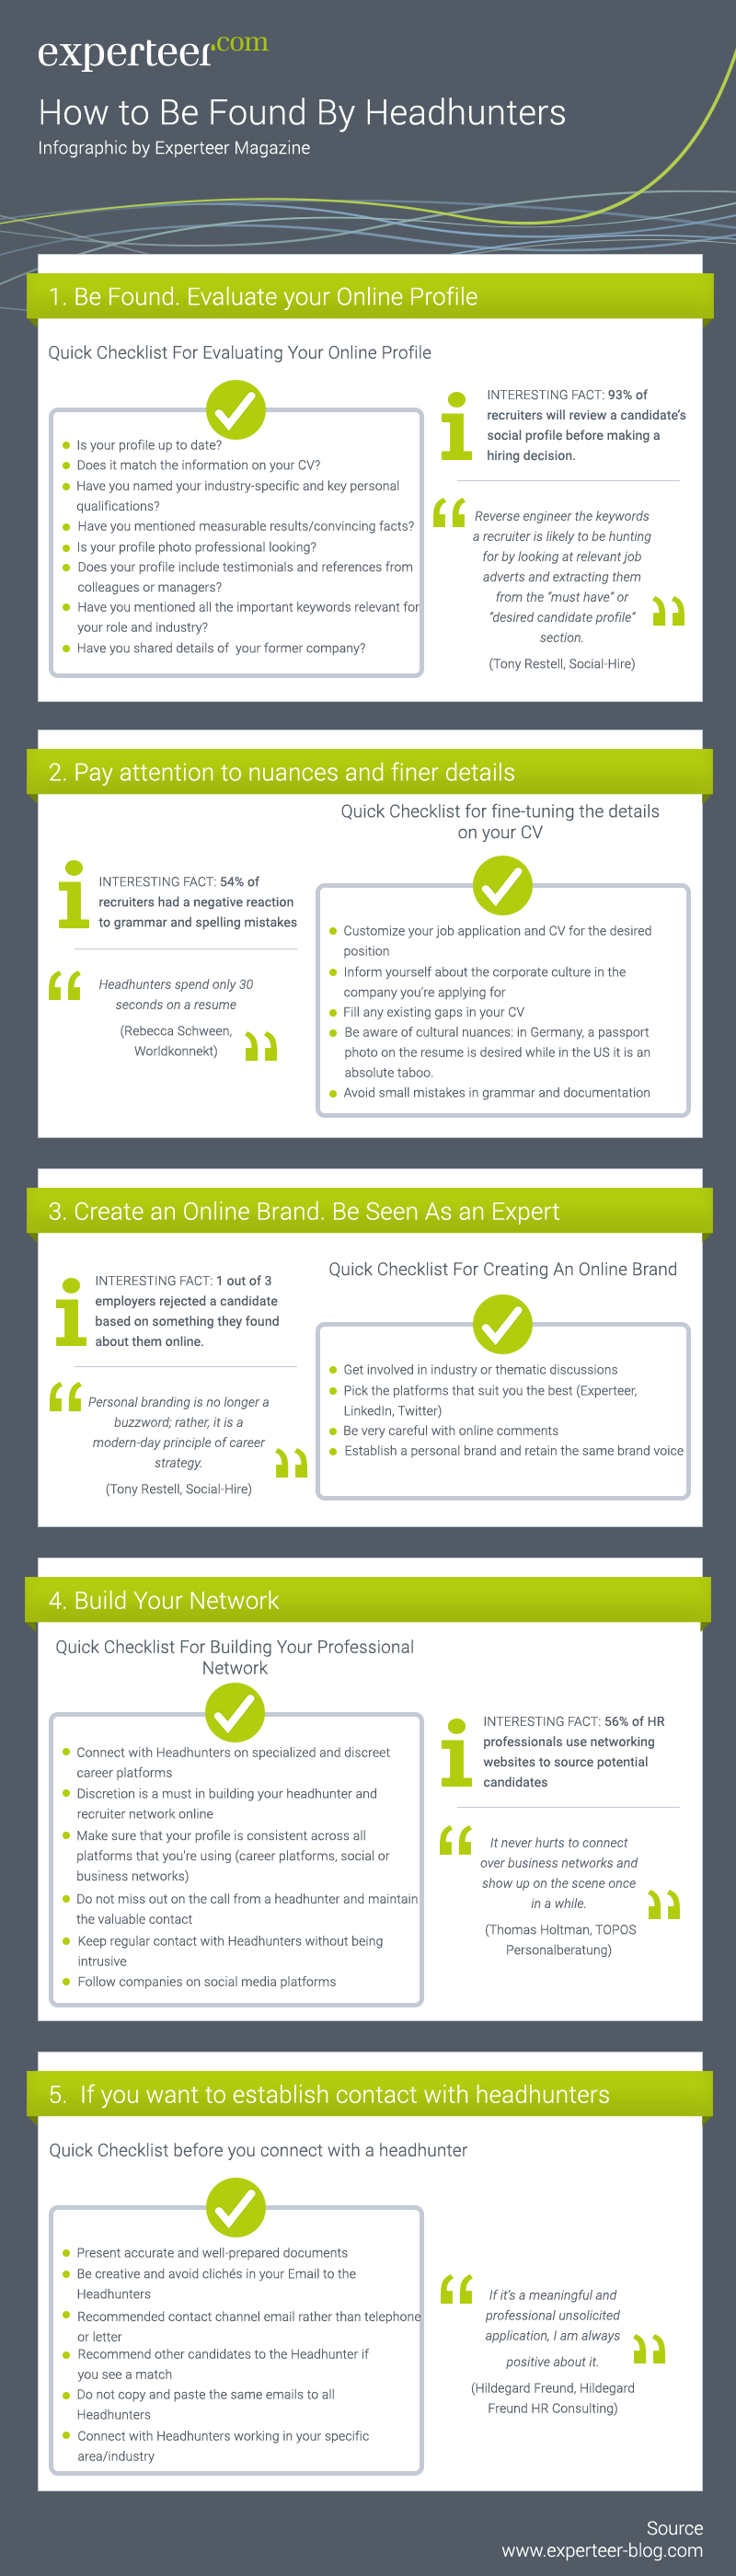 Resume Words For Customer Service How To Be Foundheadhunters Infographic  Better Choice Of .